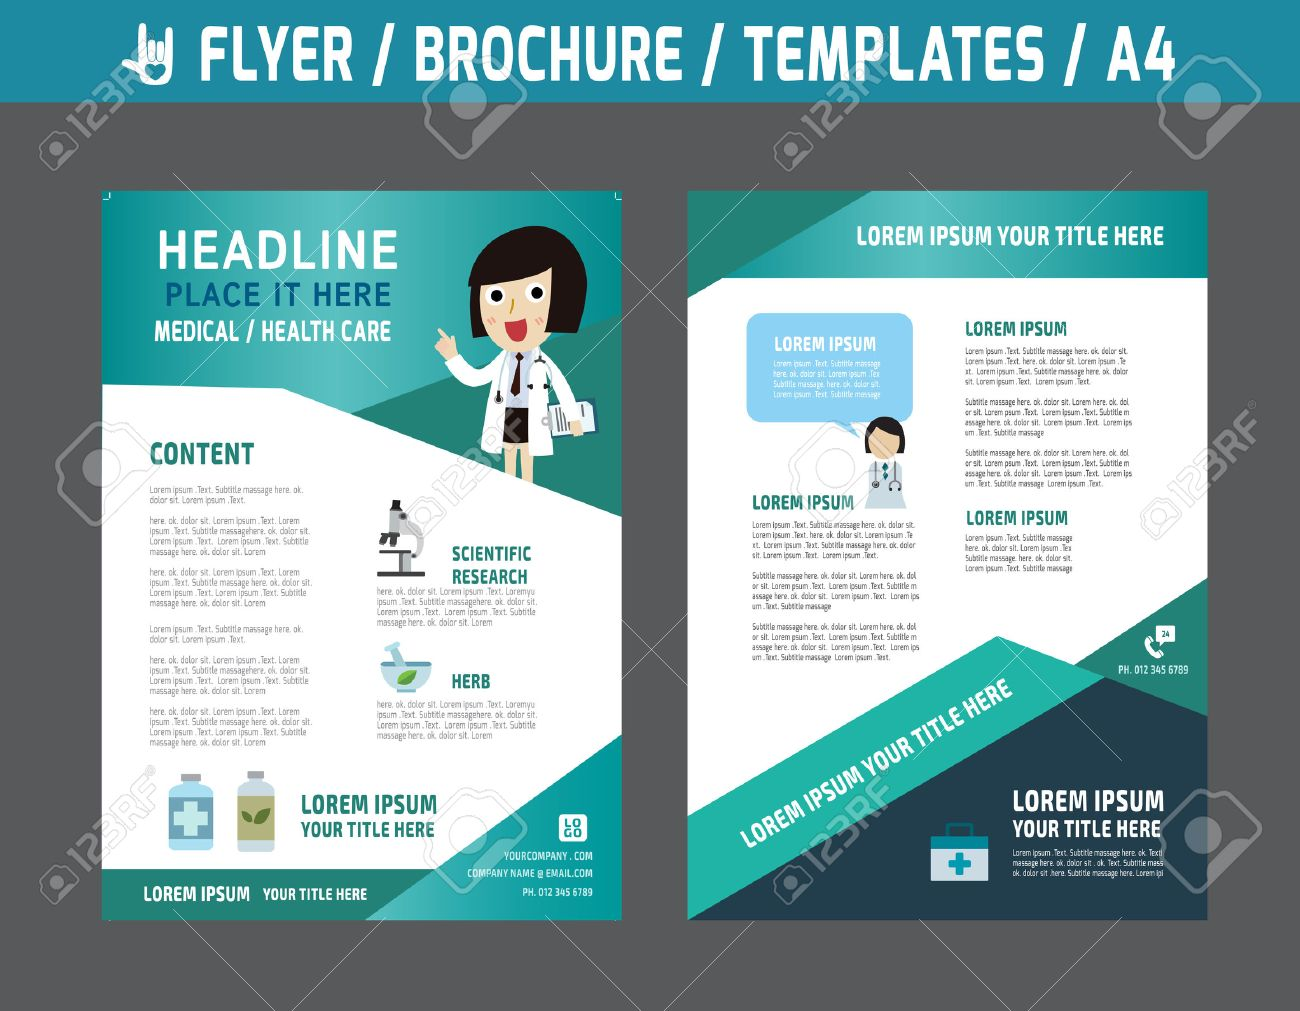 Flyer multipurpose design vector template in A4 size.Templates or Banners for Medical and Health Care concept.abstract brochure modern style.wellness marketing illustration. - 48858597